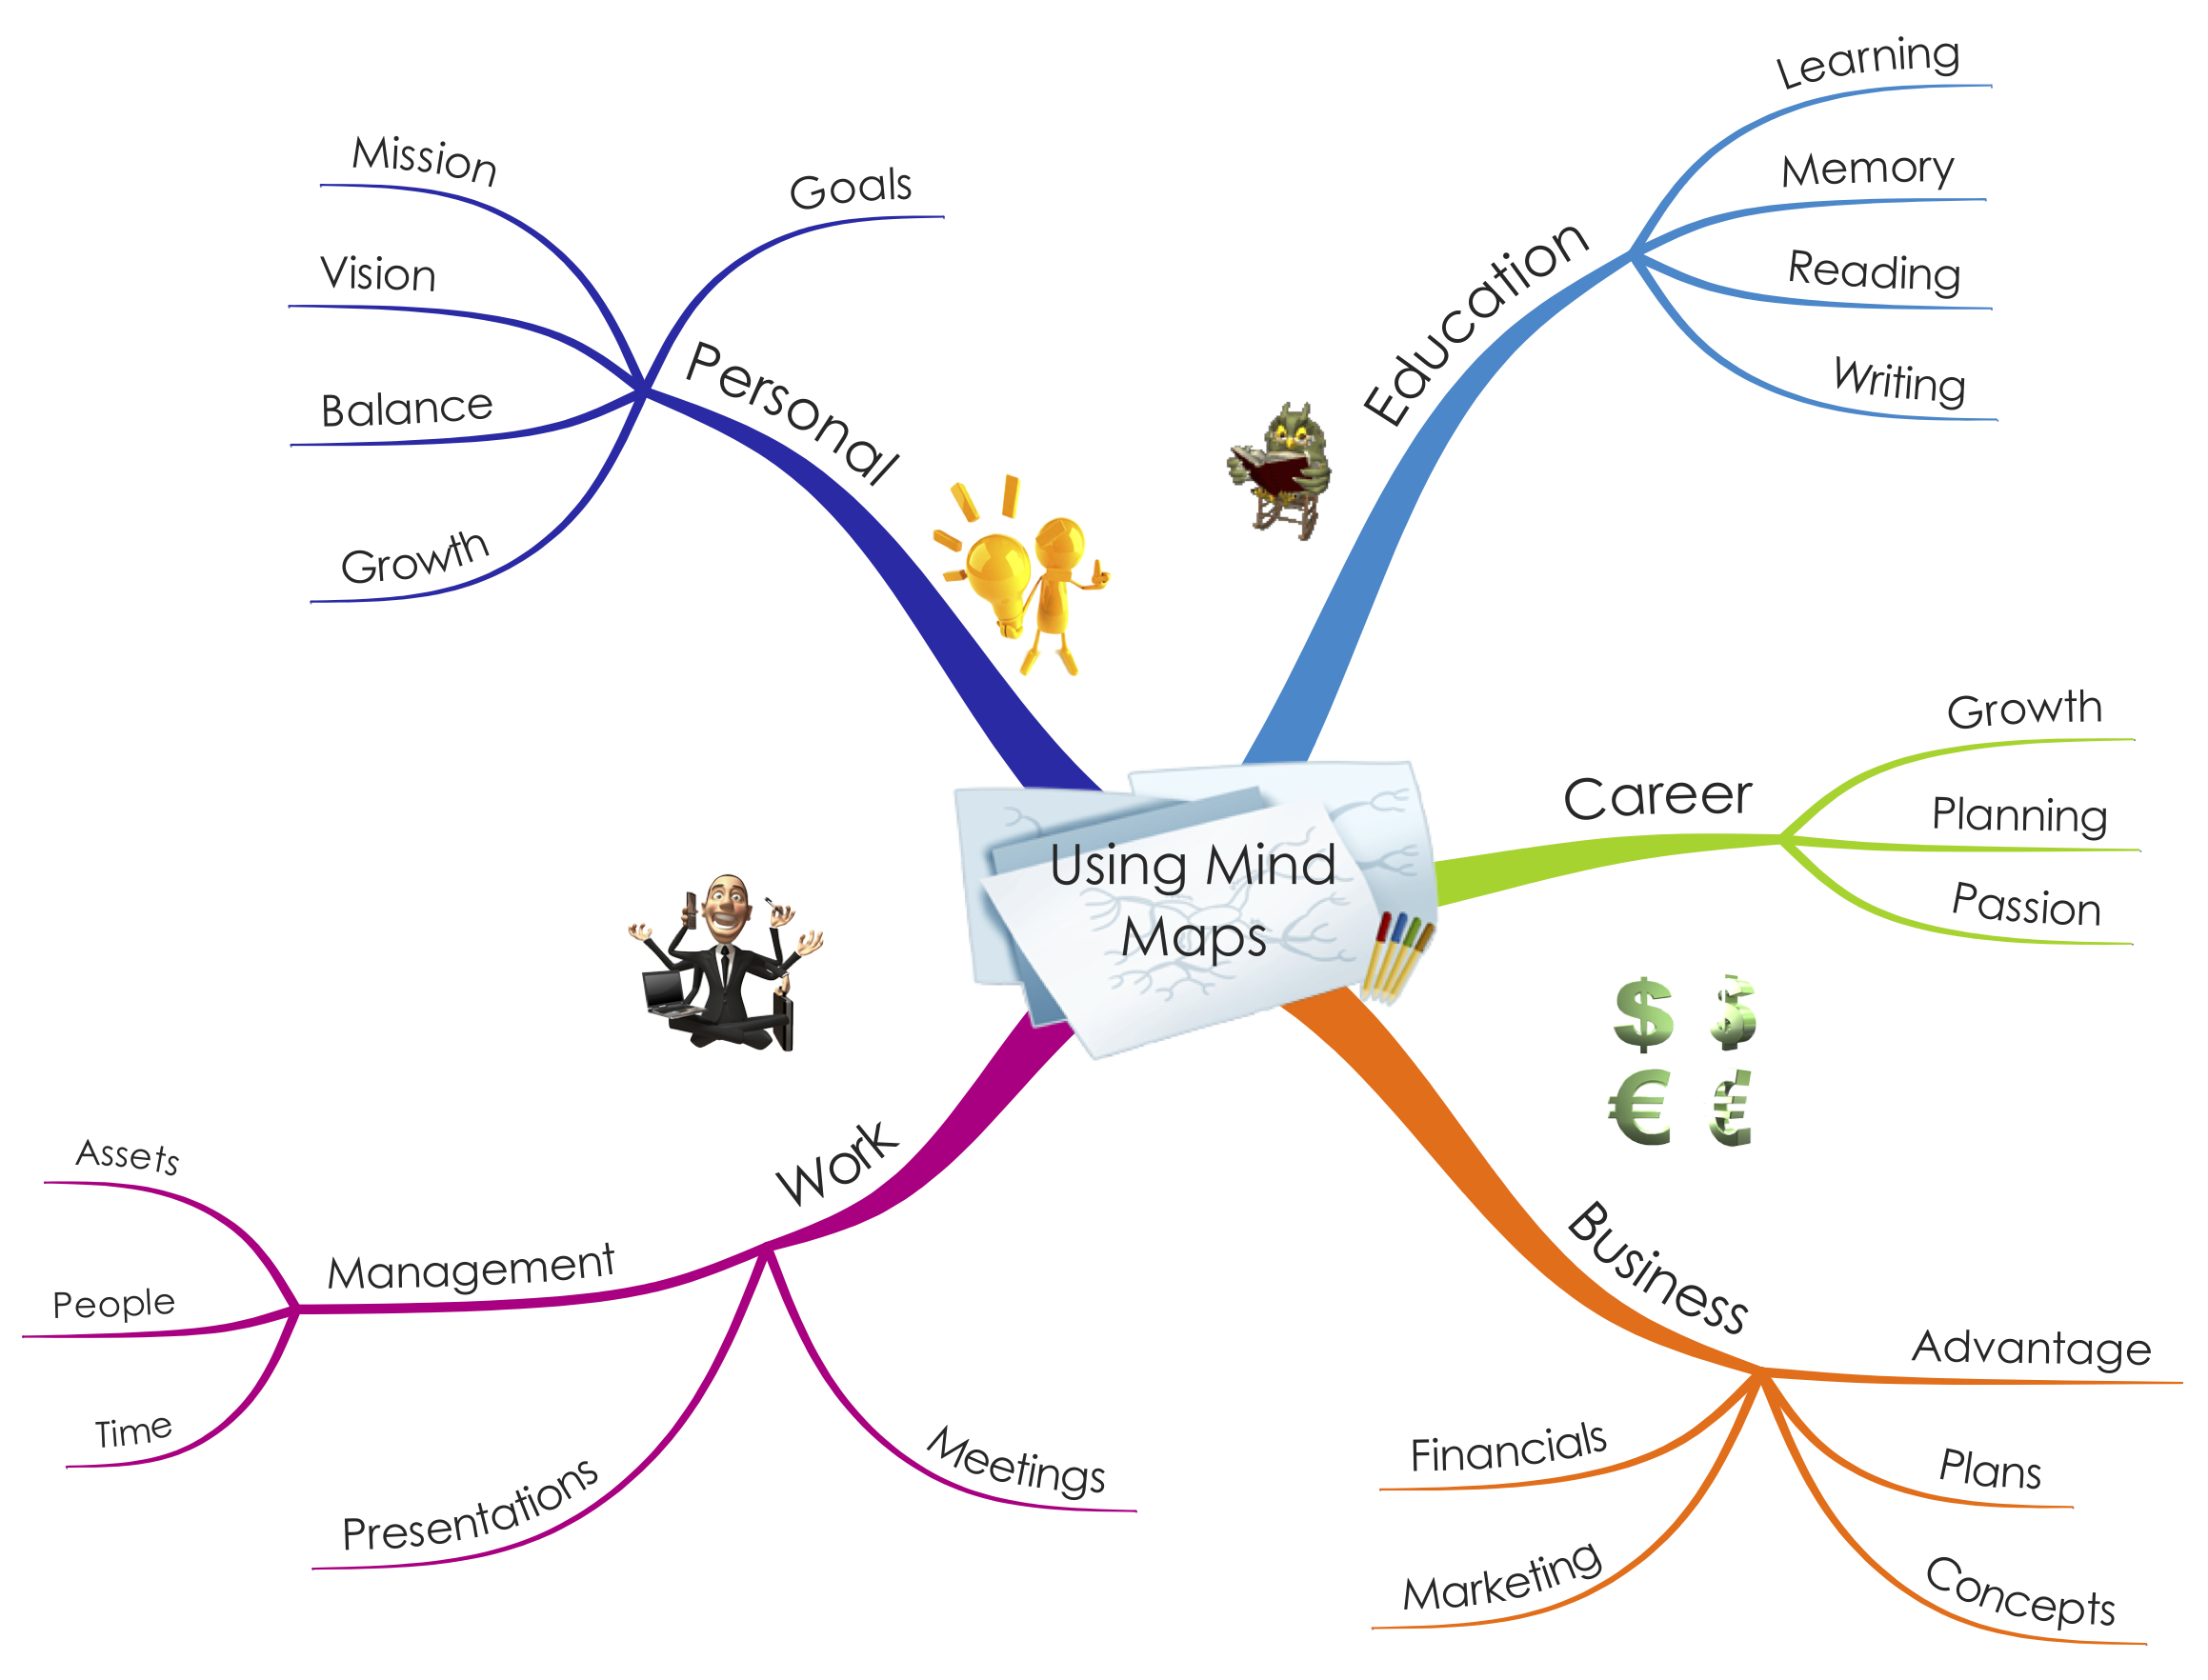 Using Mind Maps To Be More Effective And Gain A Competitive Advantage